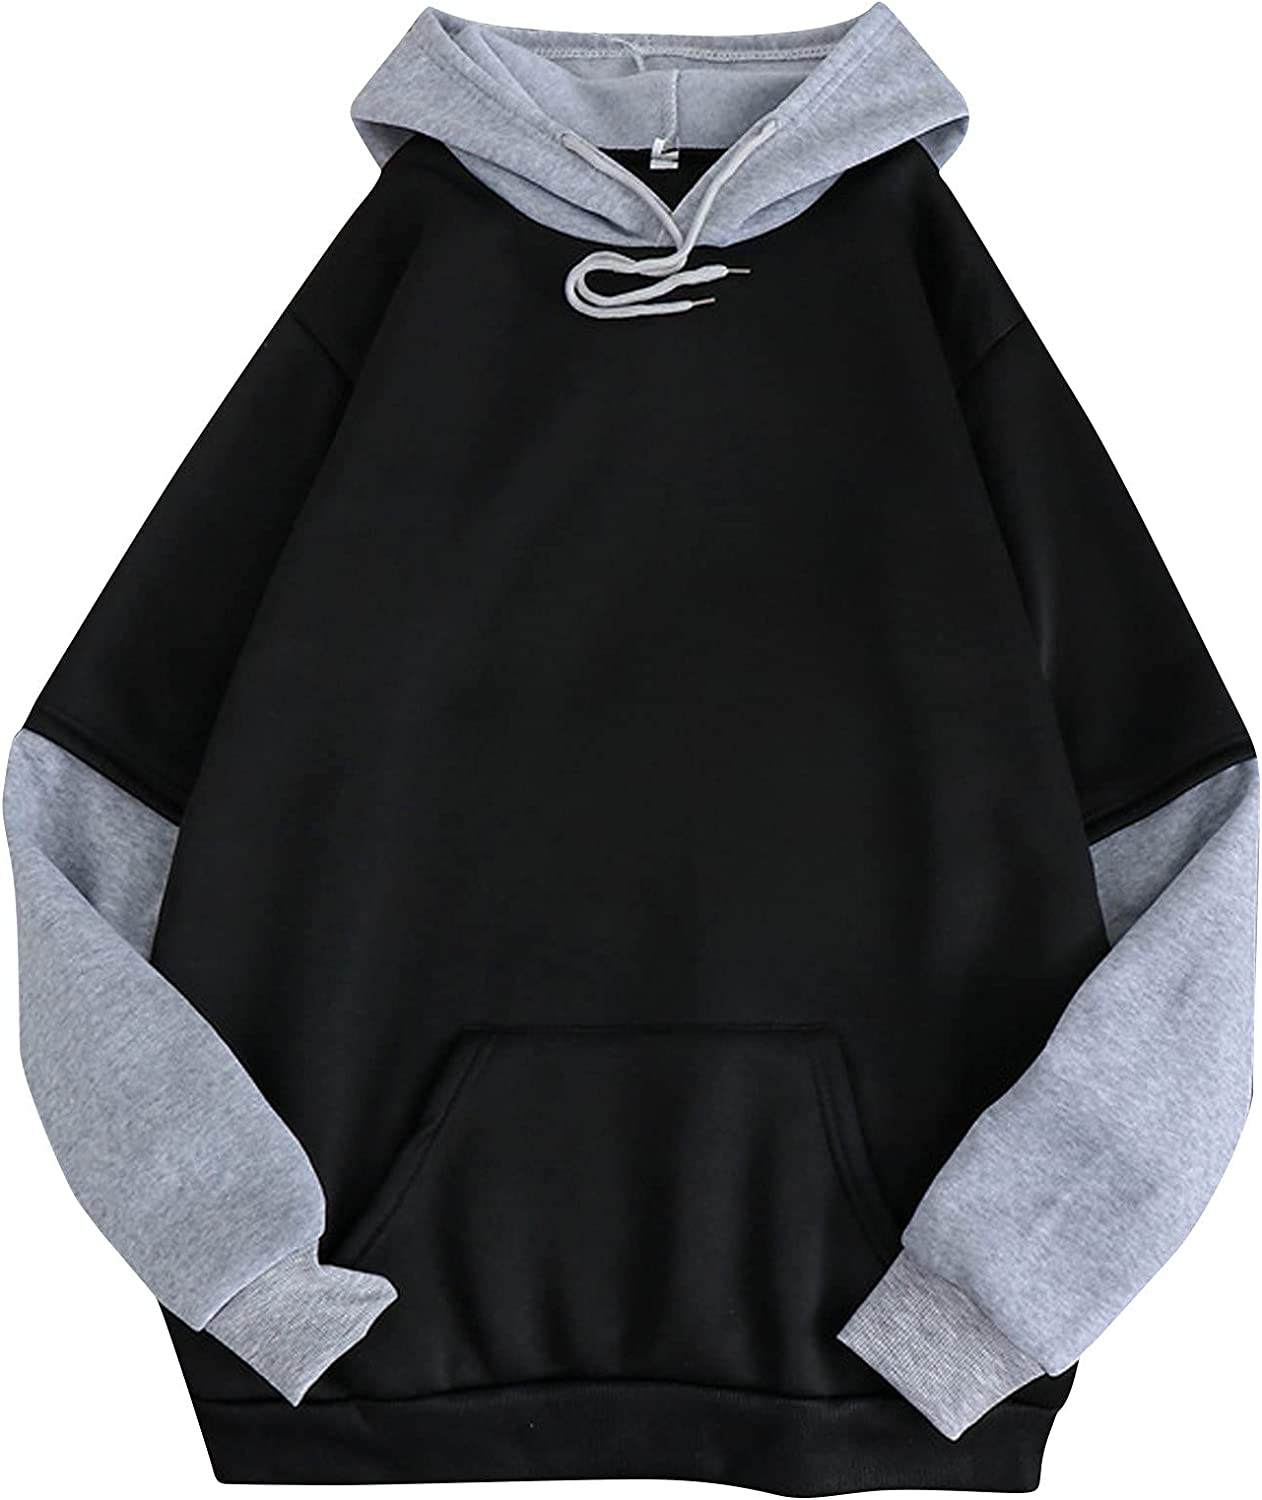 Women's Hoodies Tops Long Sleeve Casual Sweatshirts Pure Color Patchwork Loose Hooded Pullover with Drawstring